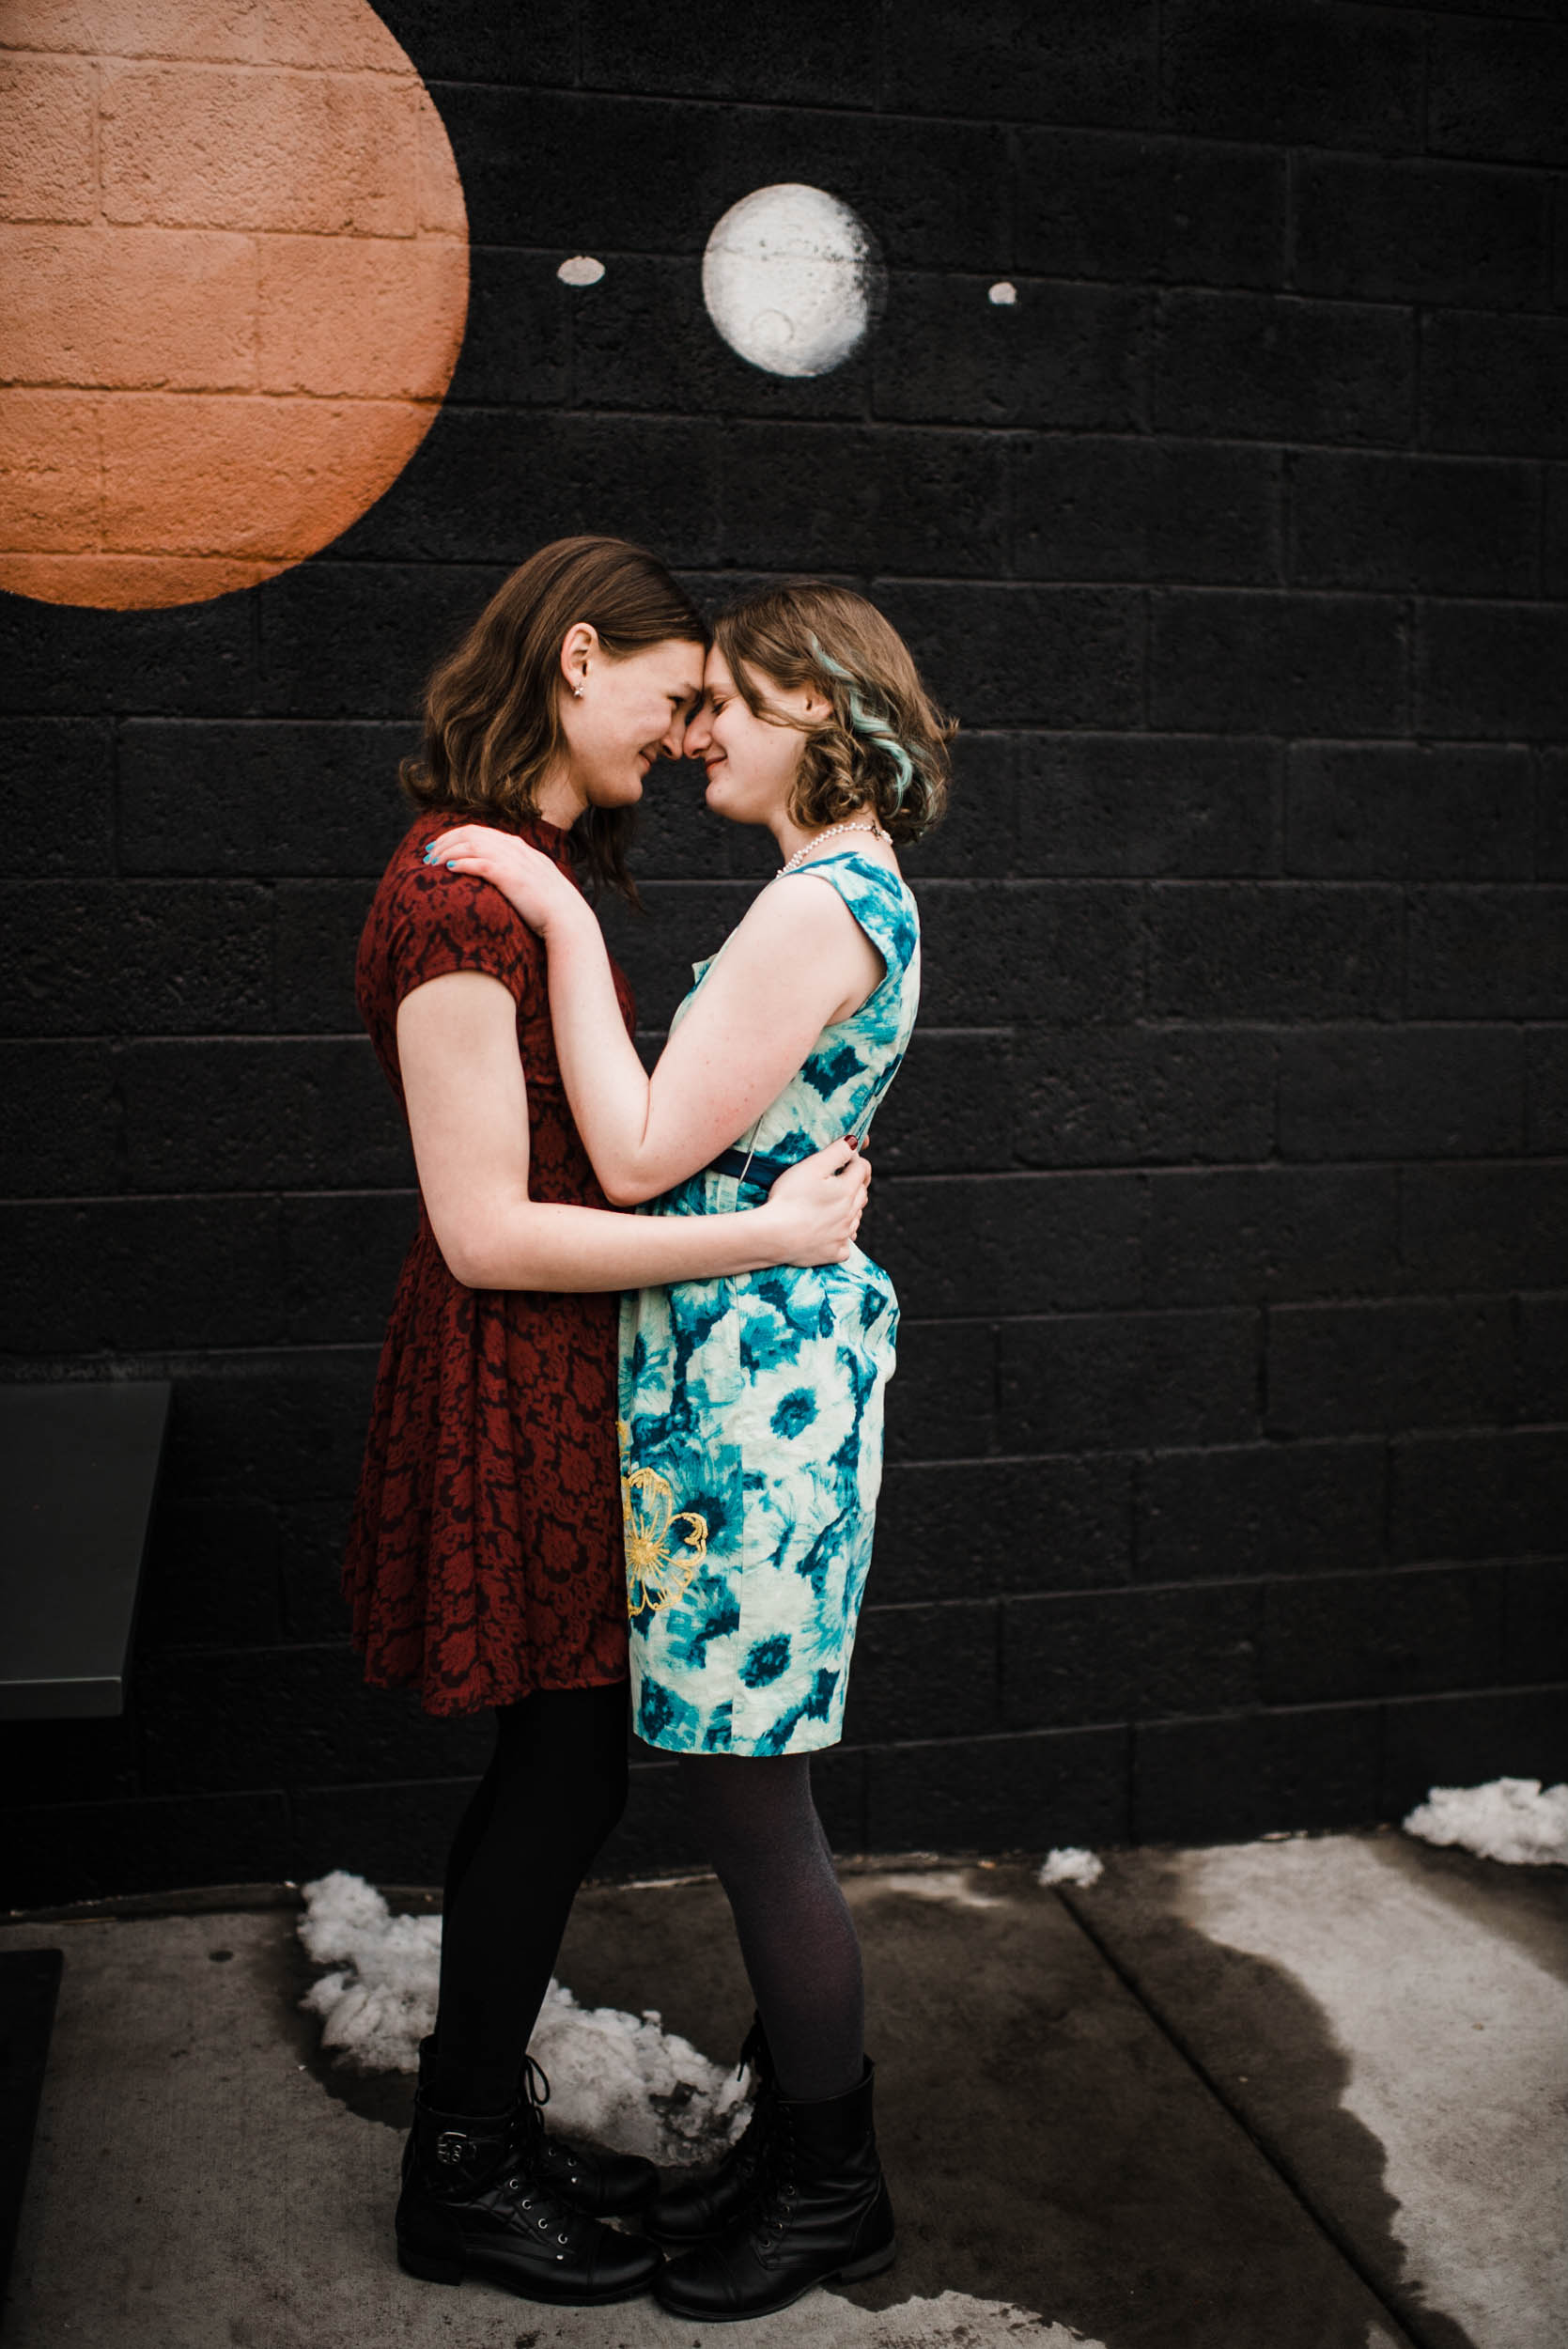 Dancing in the cold at Denver Colorado RiNo art mural, RiNo Arts District, RiNo engagement session, LGBT wedding photographers, LGBT friendly wedding photographers, LGBT engagement photographers, Denver wedding photographers, Denver Engagement photographers